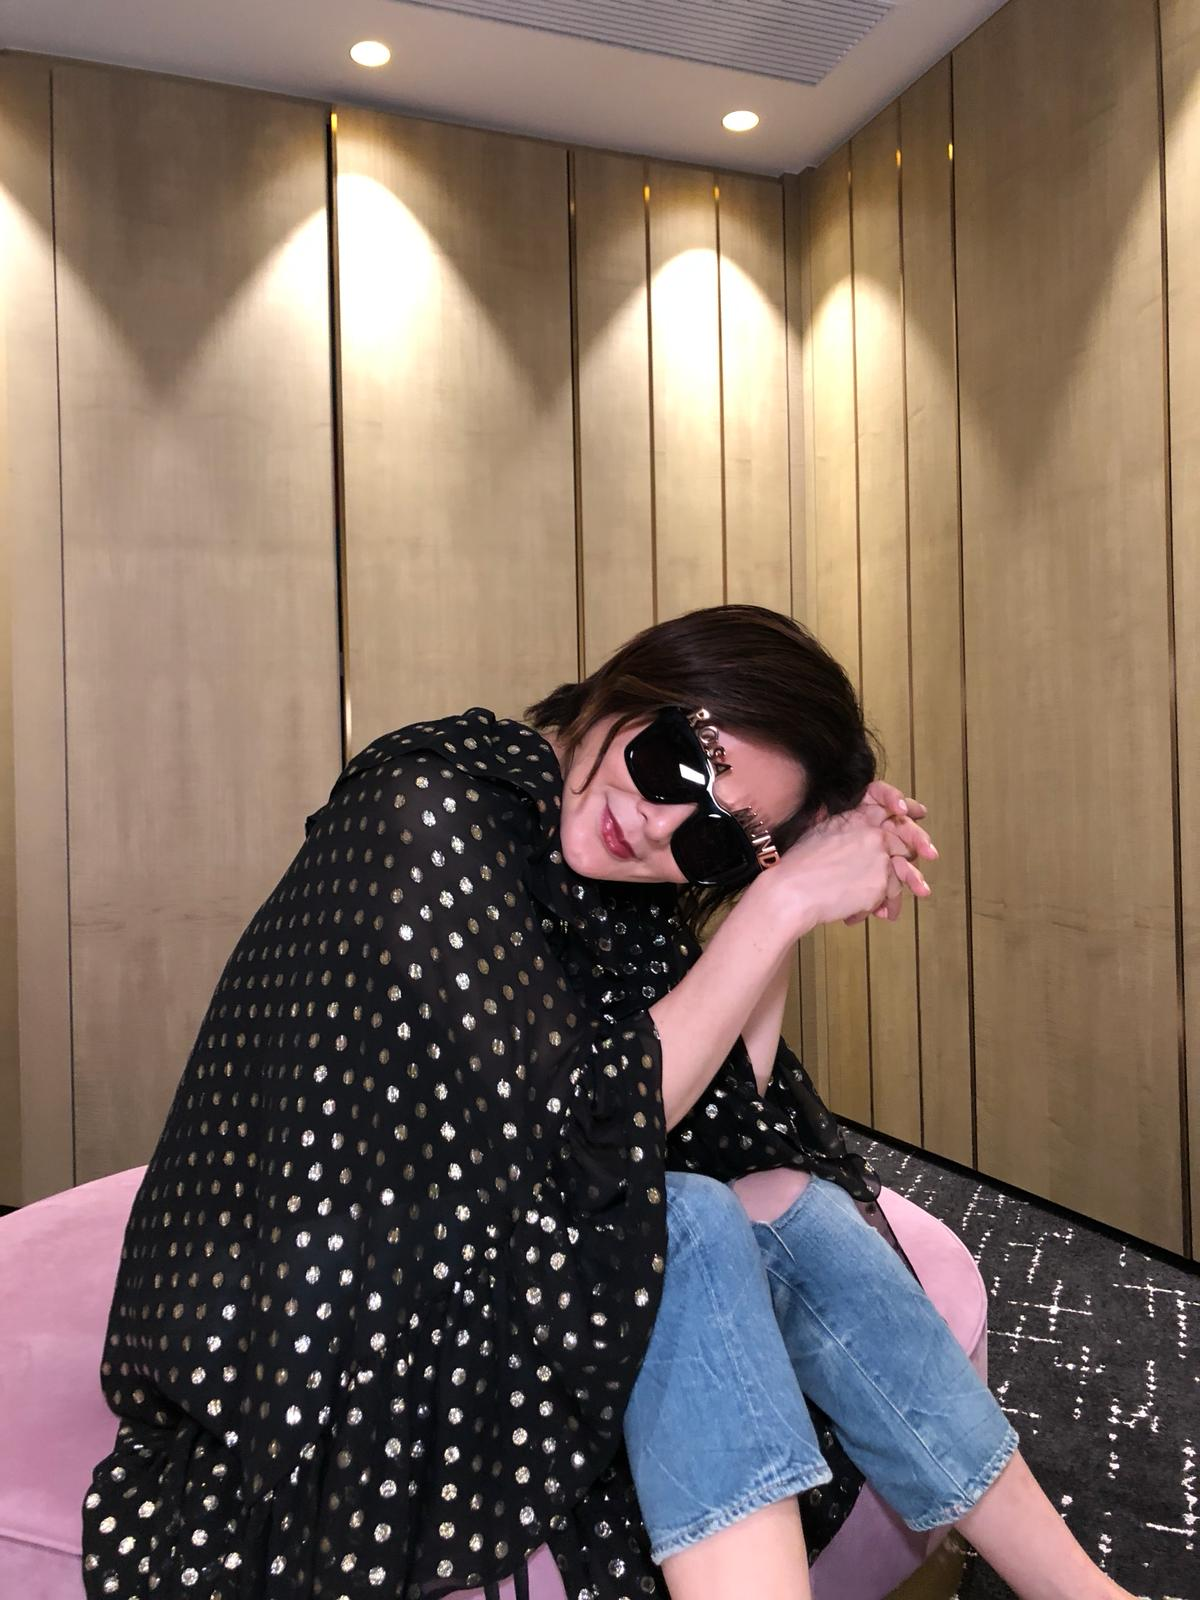 Rosamund Kwan 關芝琳 wears REVE by RENE alphabet sunglasses